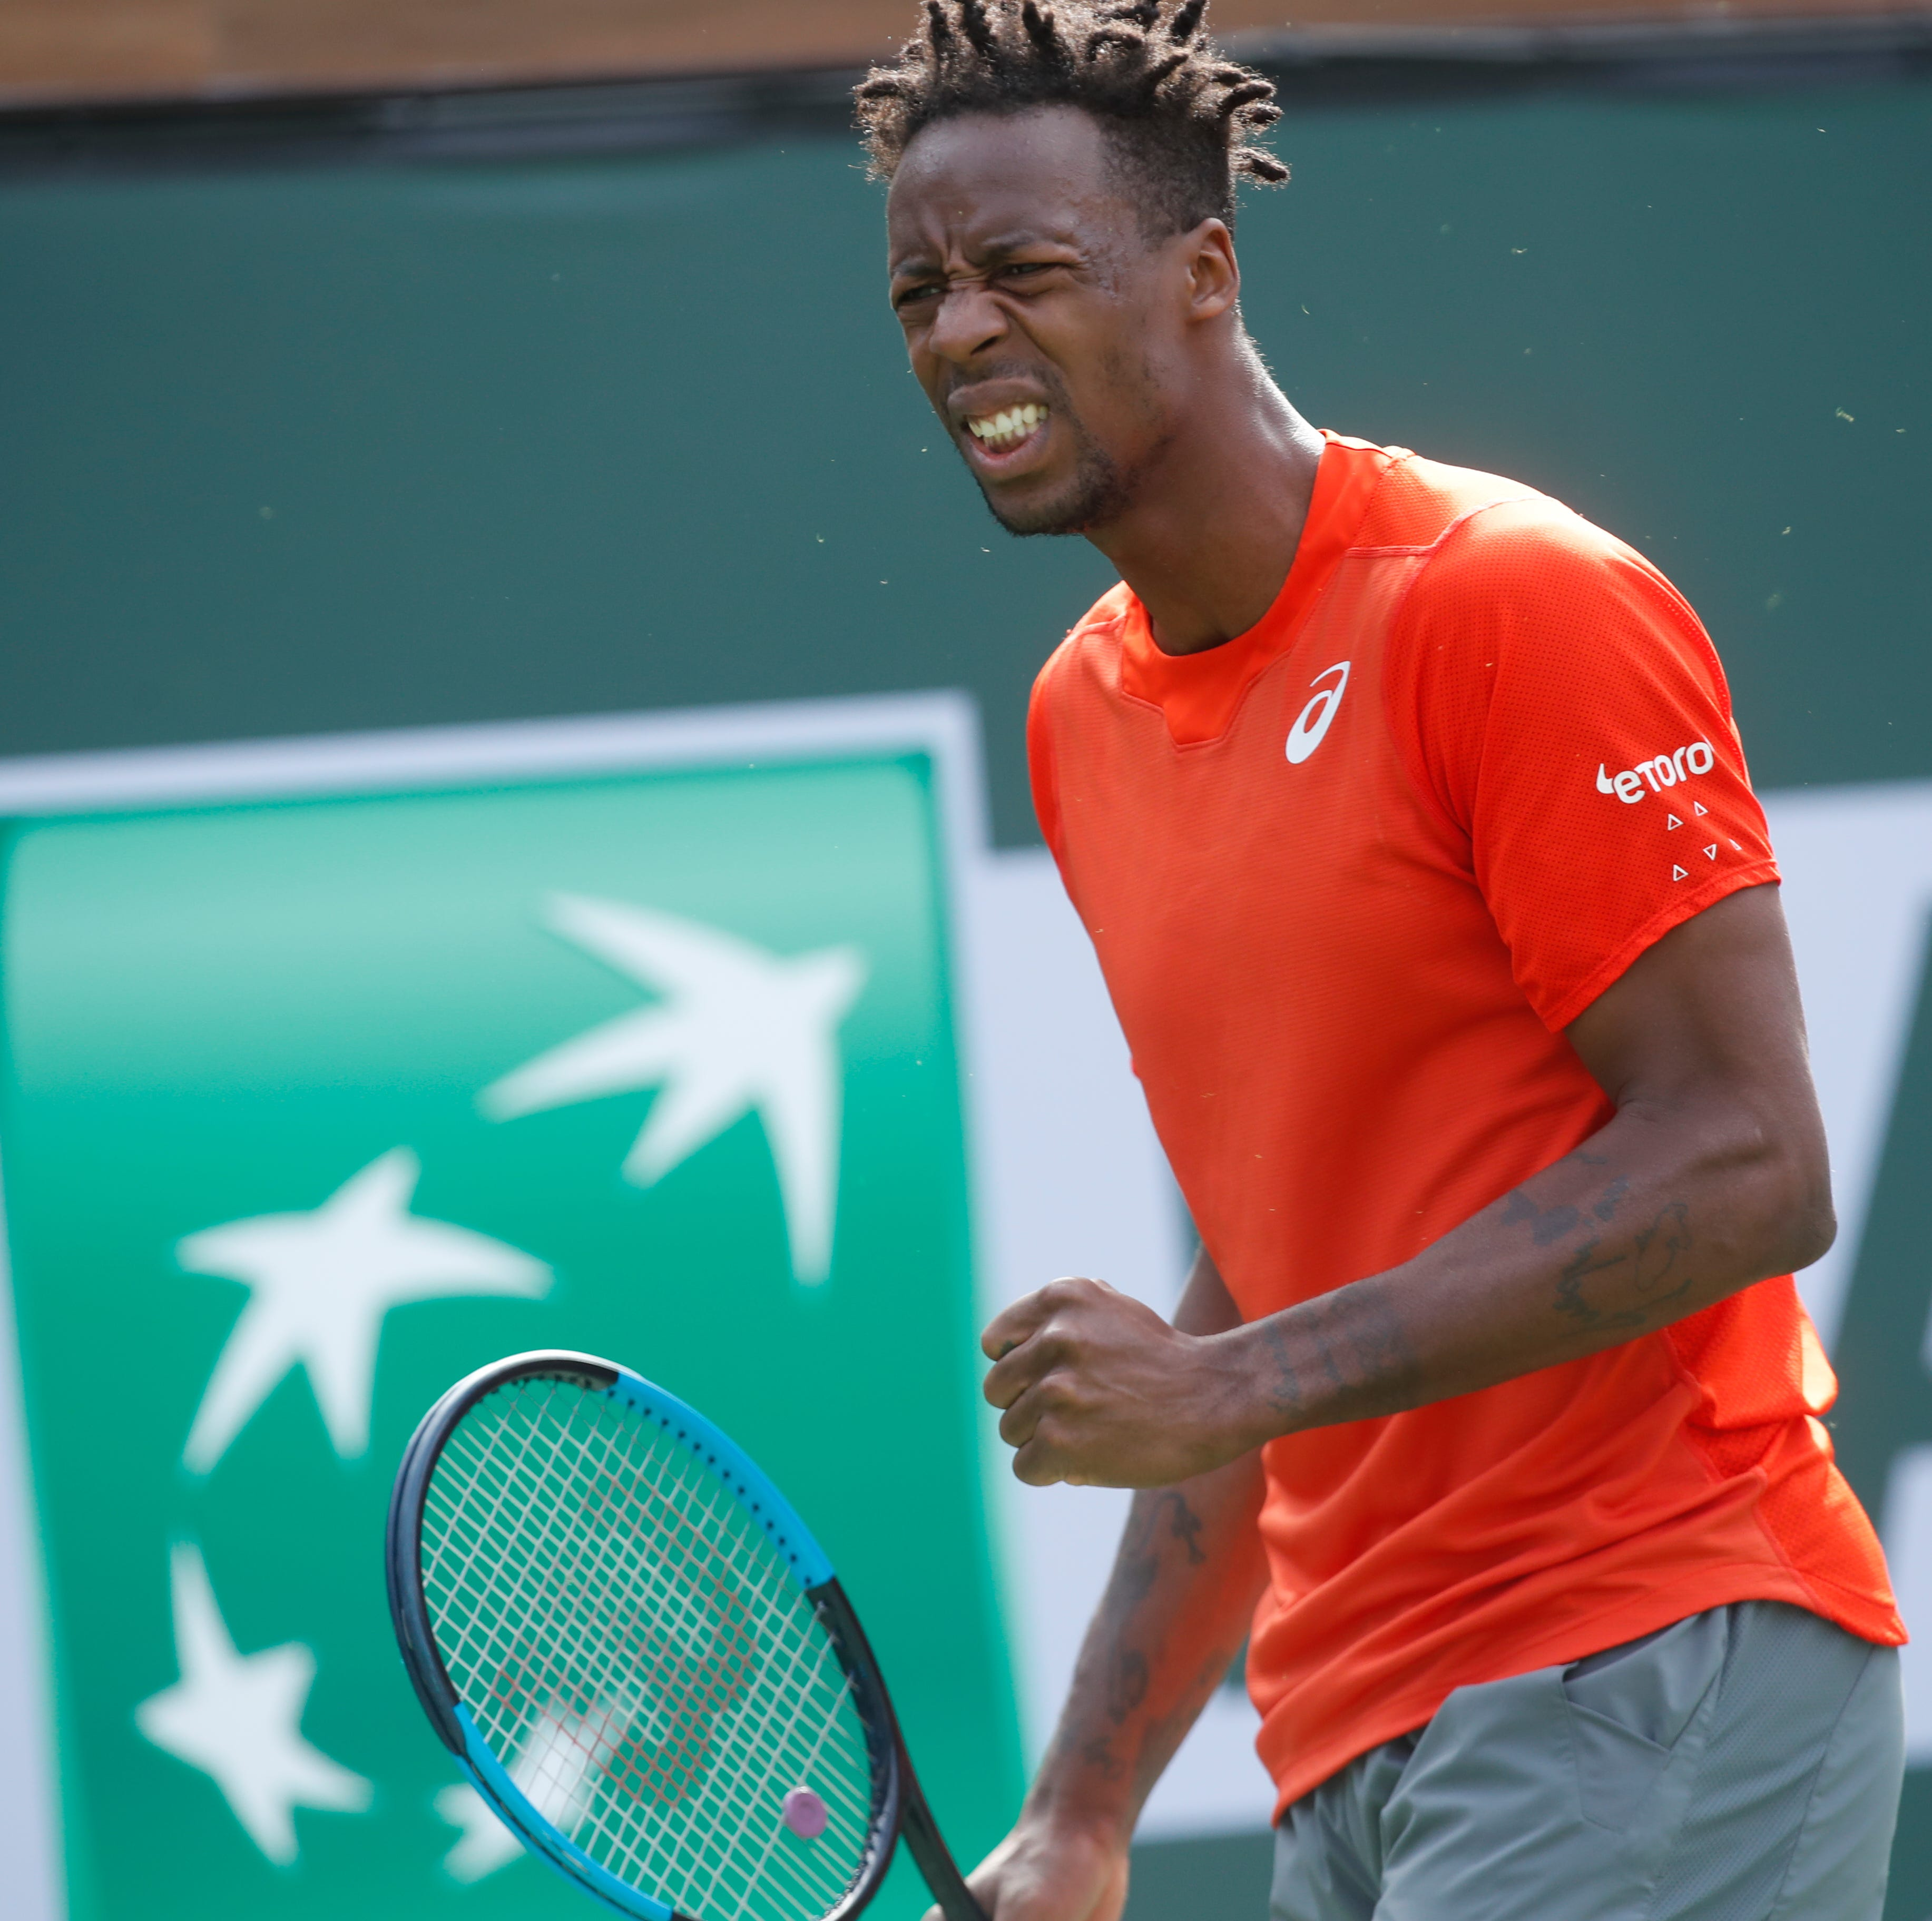 Injury forces Gael Monfils to withdraw from BNP Paribas Open prior to match